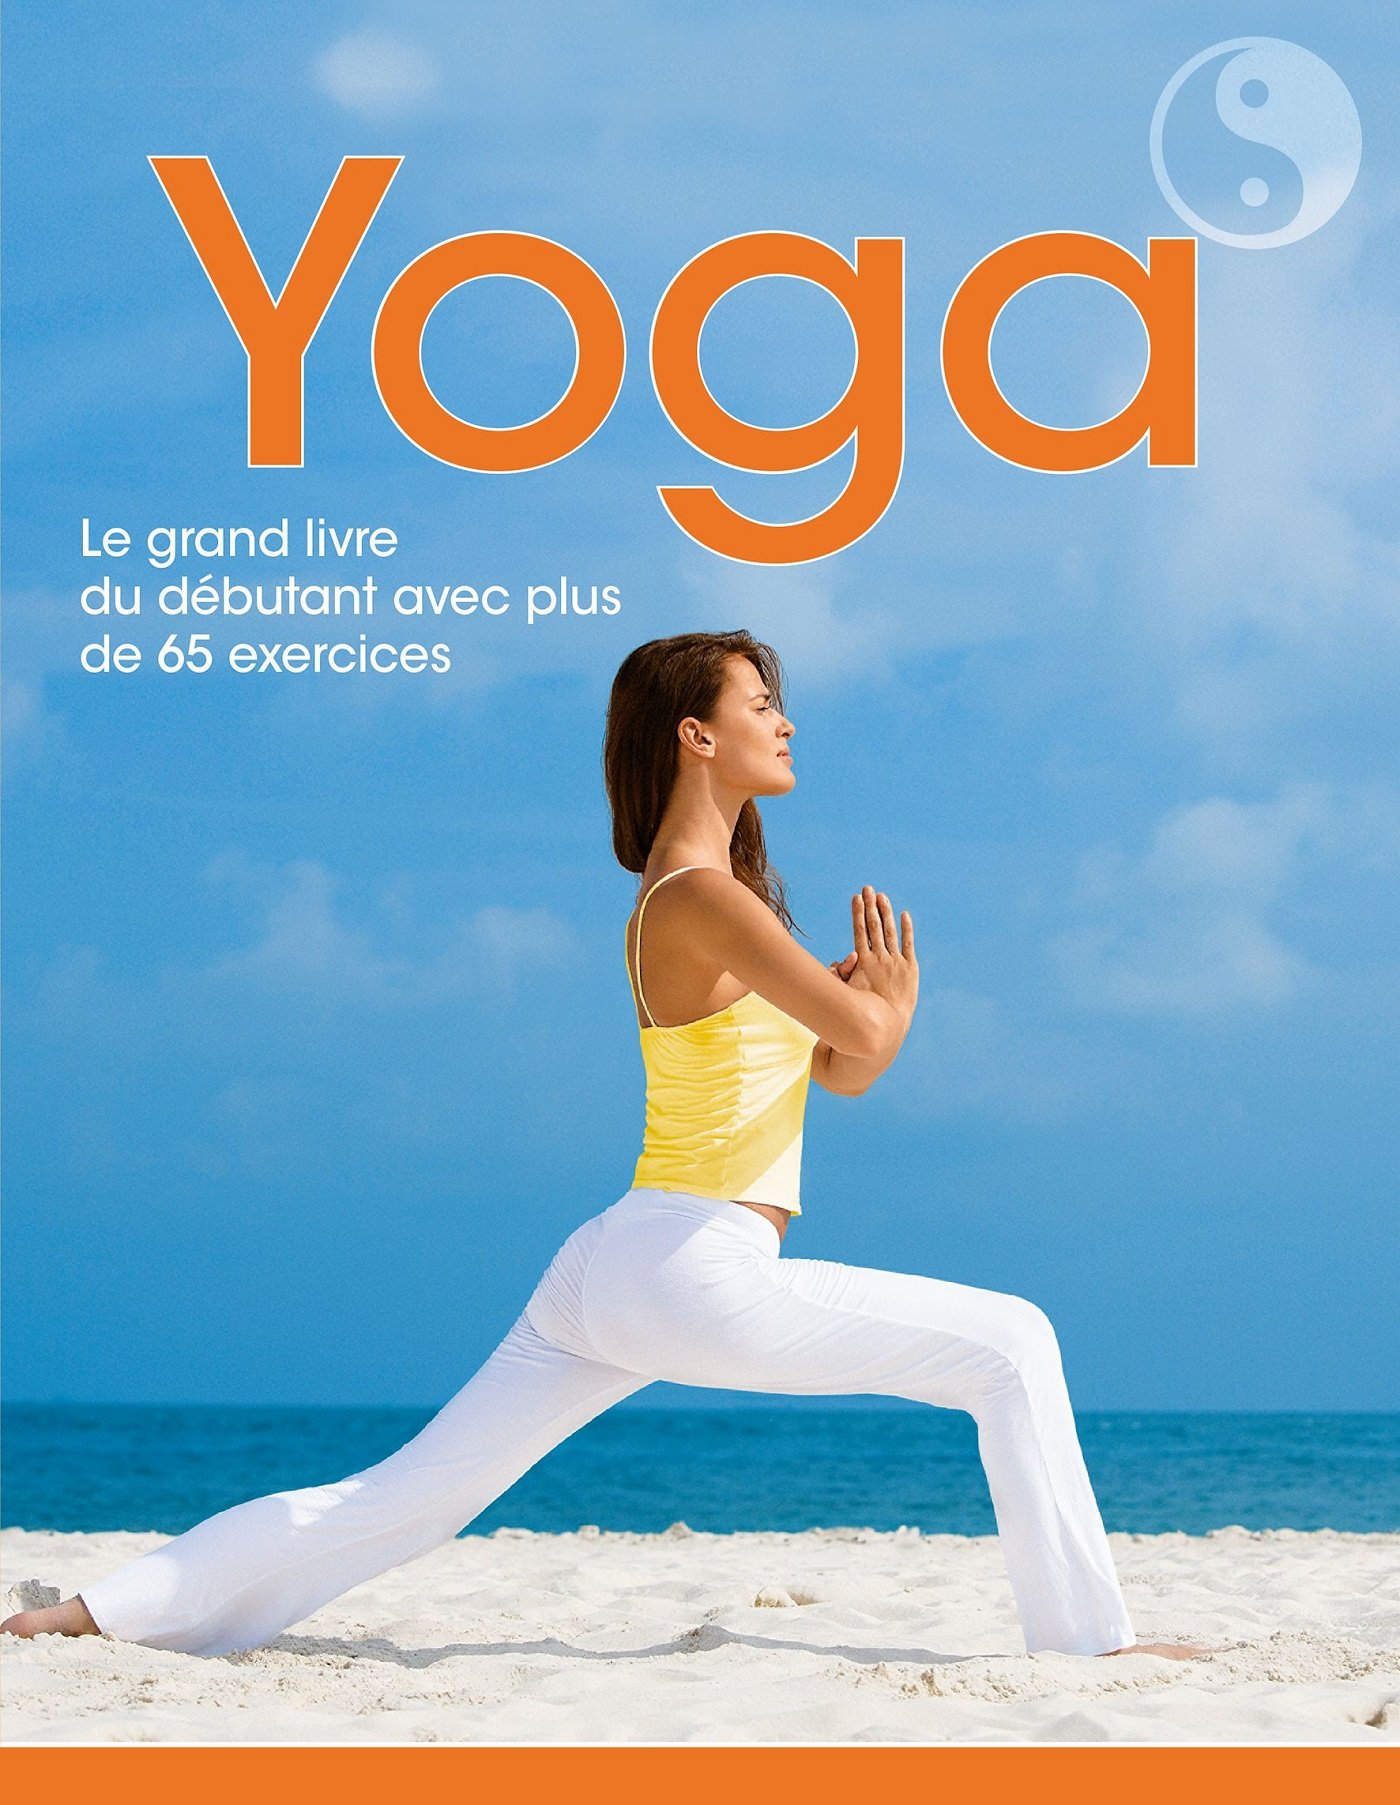 Amazon.fr - Yoga : Le grand livre du yoga avec plus de 65 postures -  Collectif, Barbara Klein, Ulrike Lowis, Claudia Pfeiffer, Robert Polster -  Livres